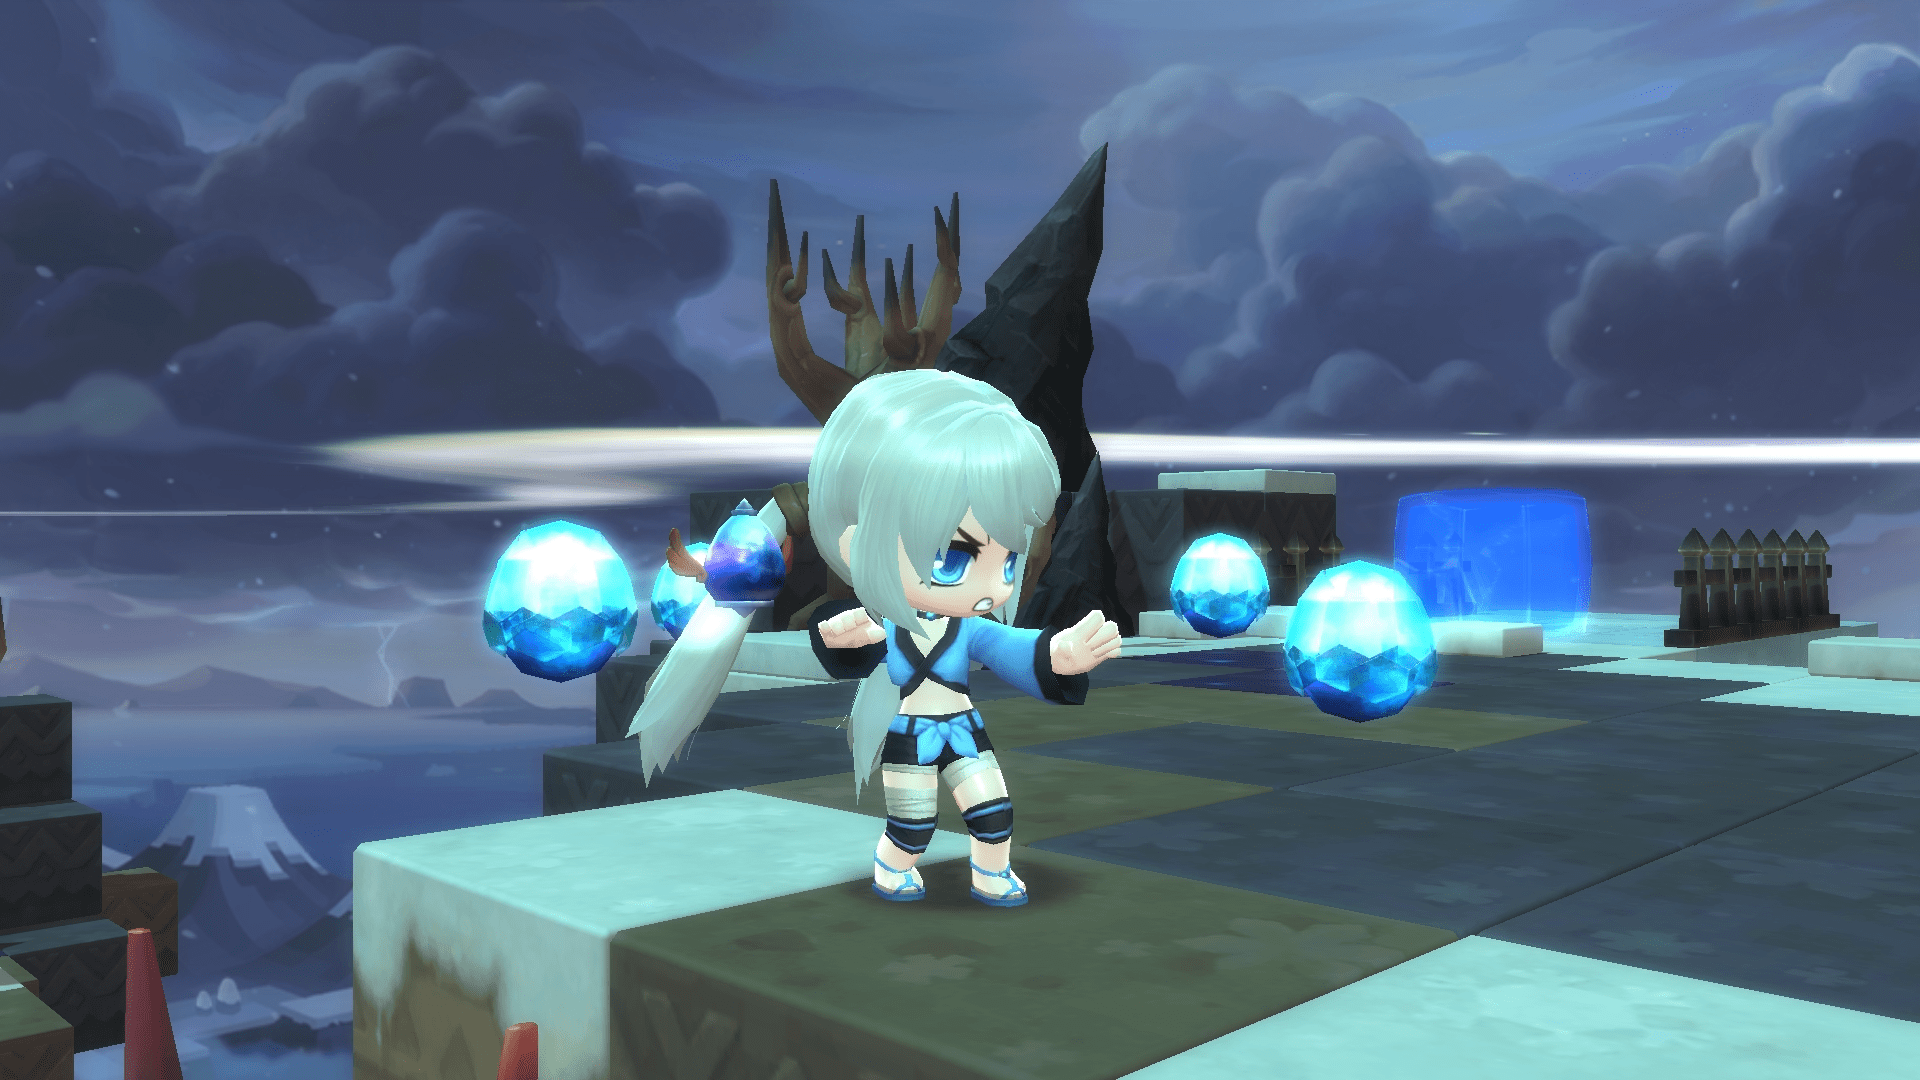 MapleStory 2 heads to the clouds in the Skybound Expansion